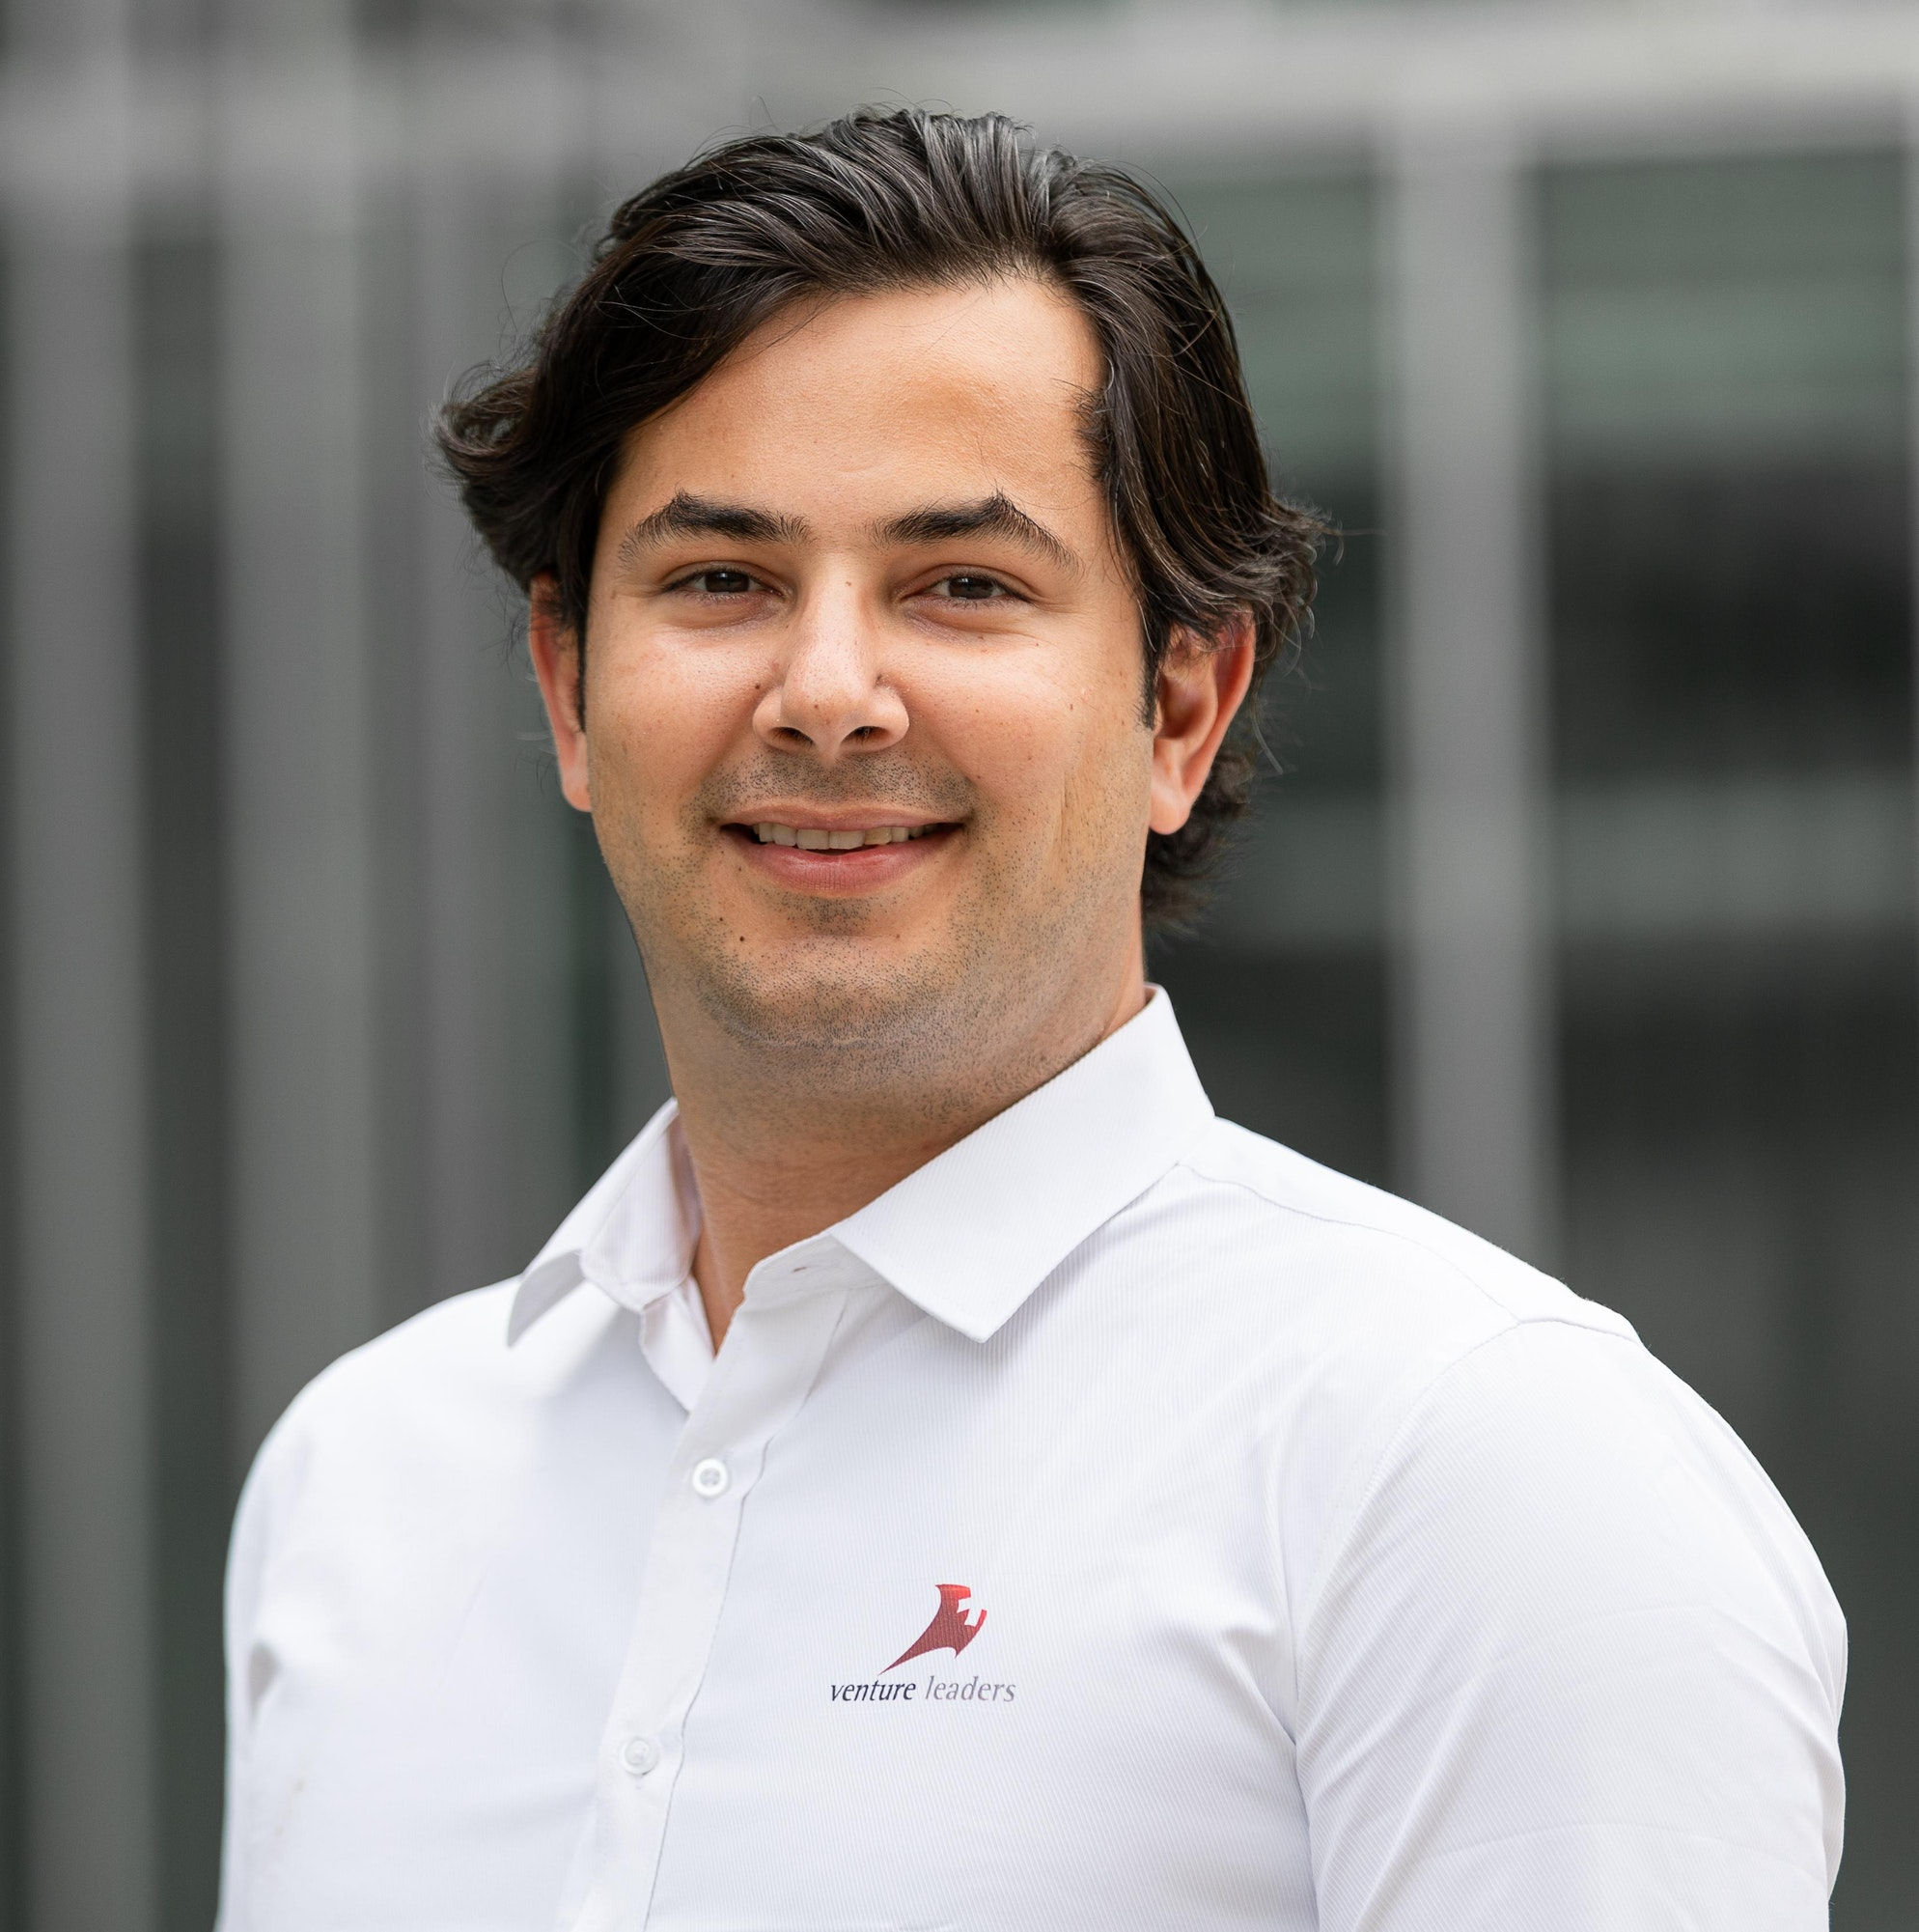 Meet CurioInvest CEO Rey Fernando Verboonen and find out how Wikipedia helps him fall asleep